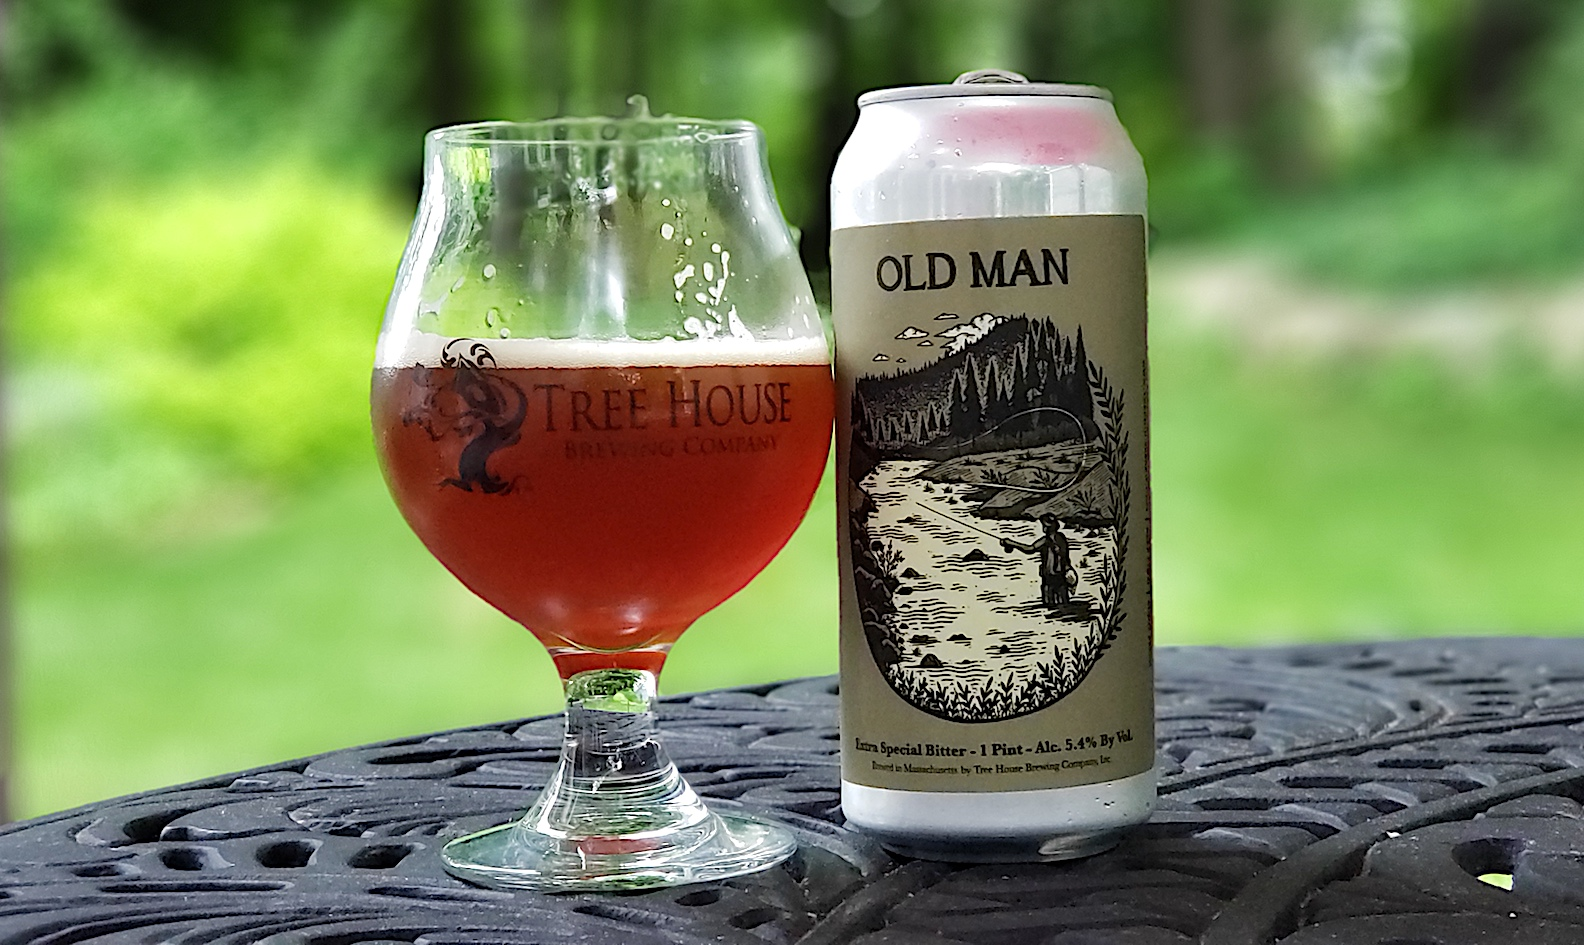 Old Man Extra Special Bitter by Tree House Brewing, Charlton, Massachusetts